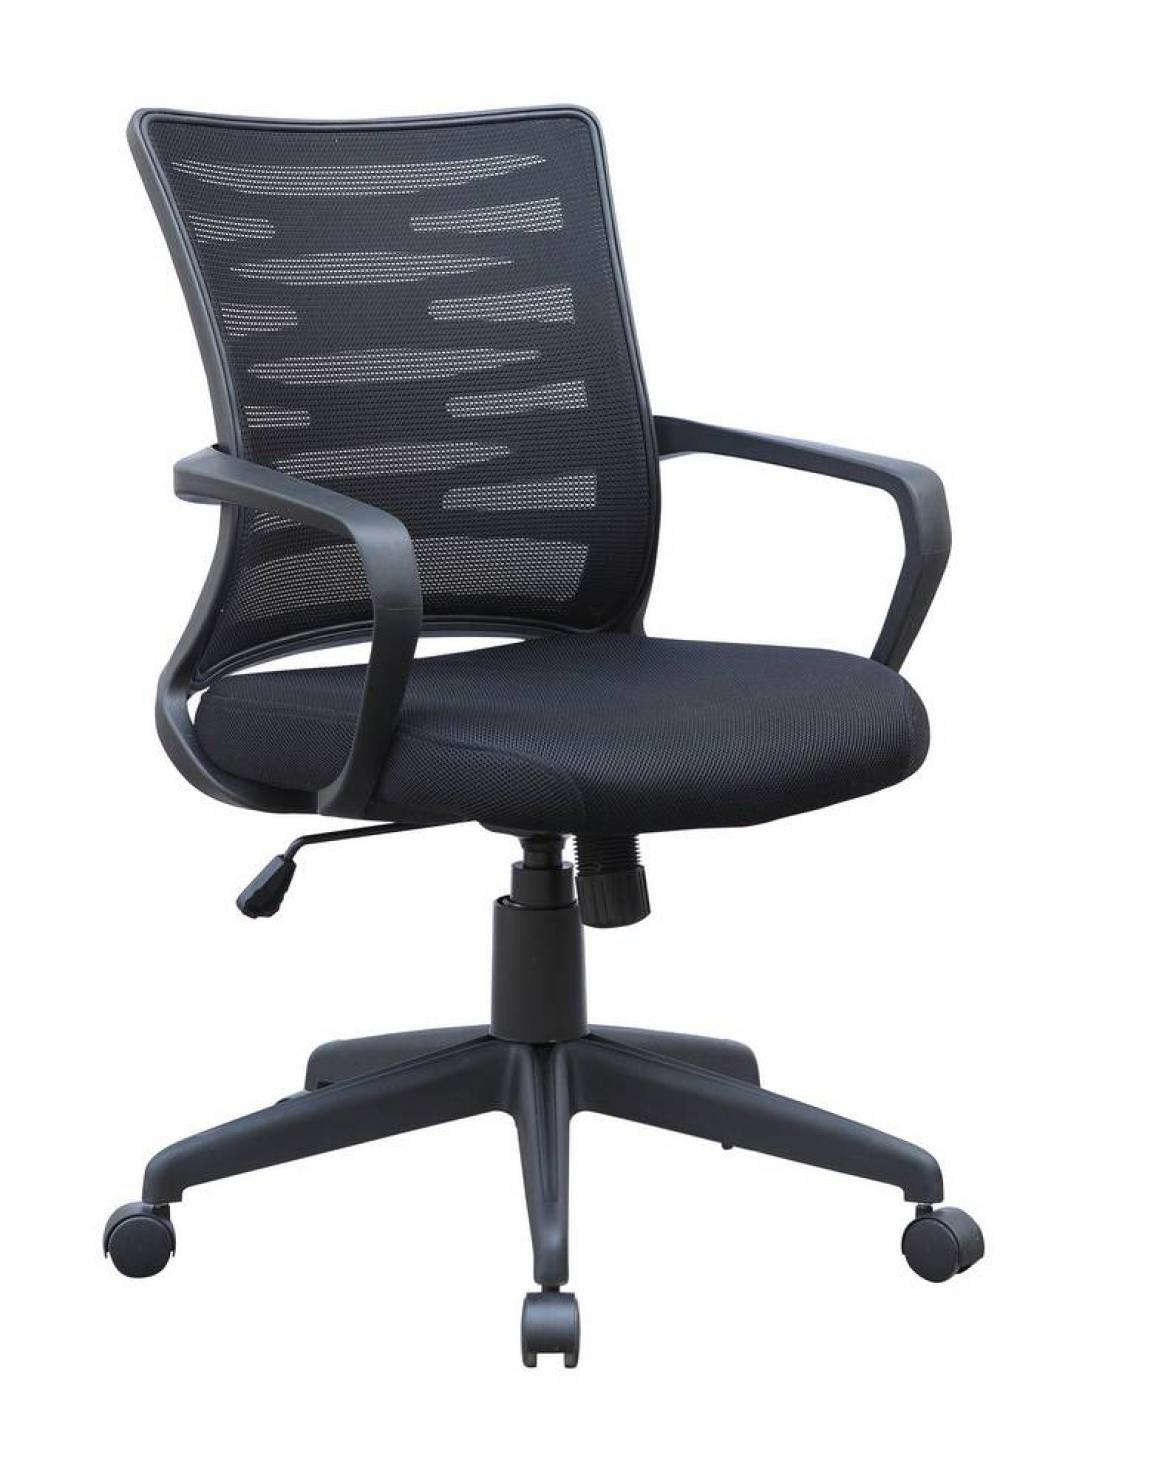 Images of Mesh Back Rolling Office Chair with Lumbar Support